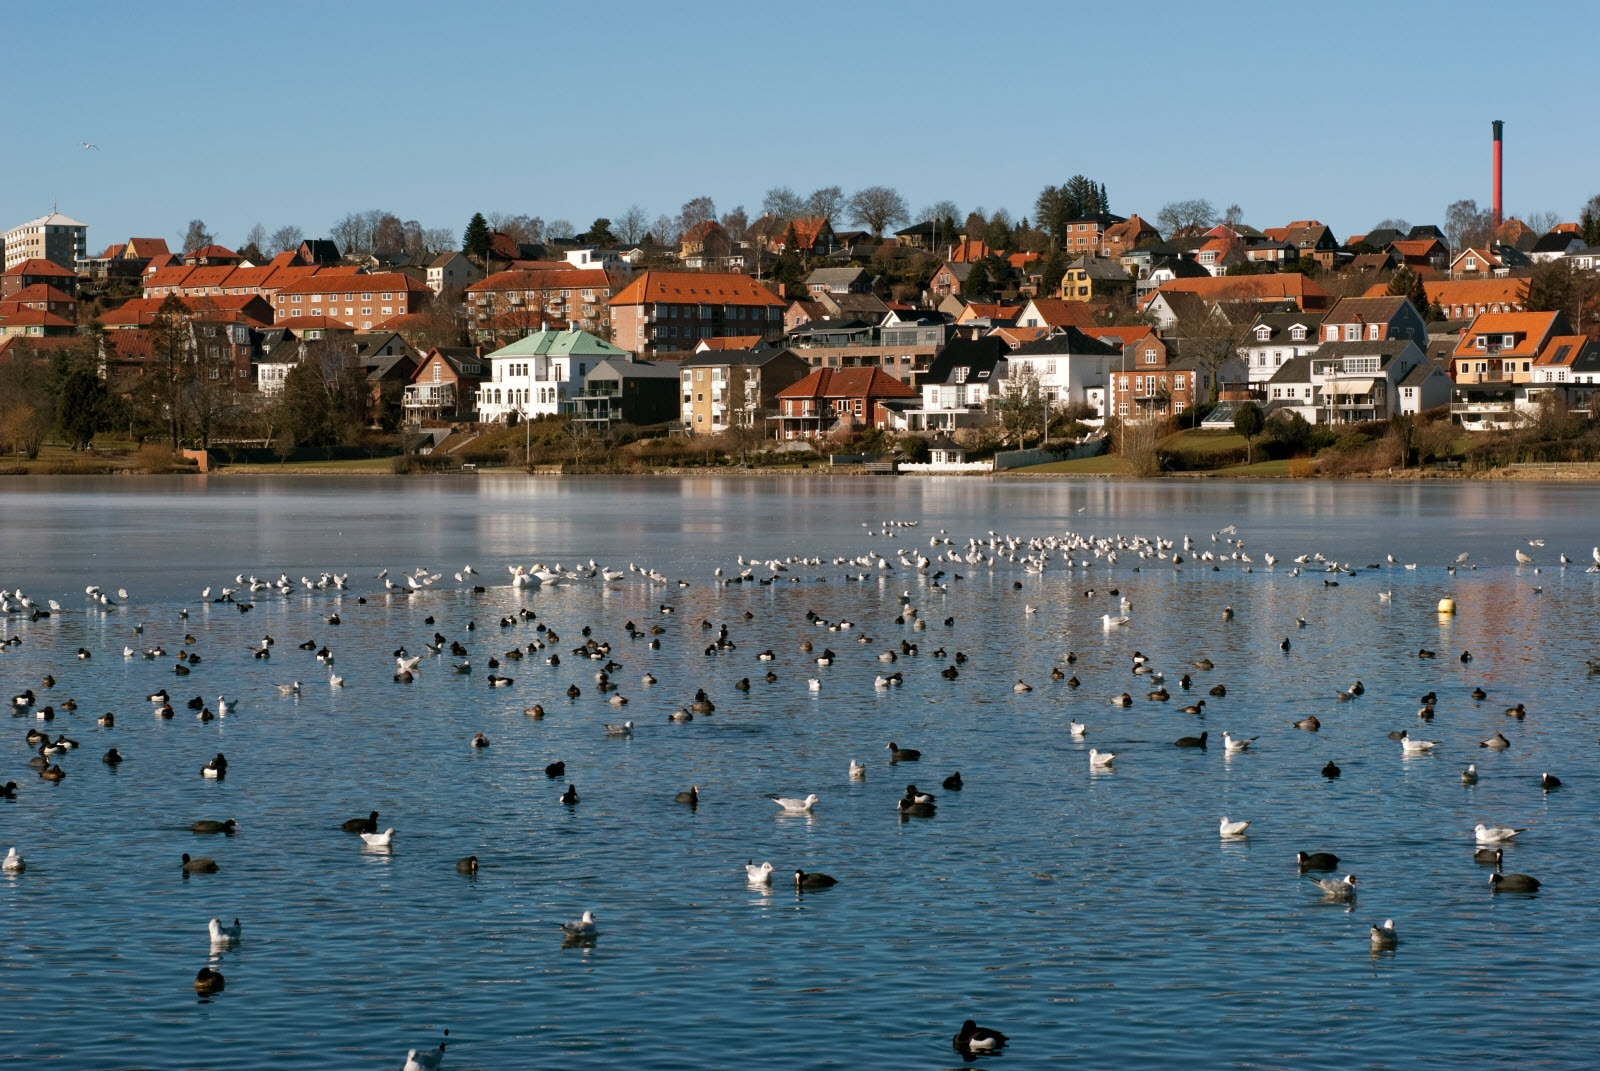 Birds all over the winter lake in Kolding.